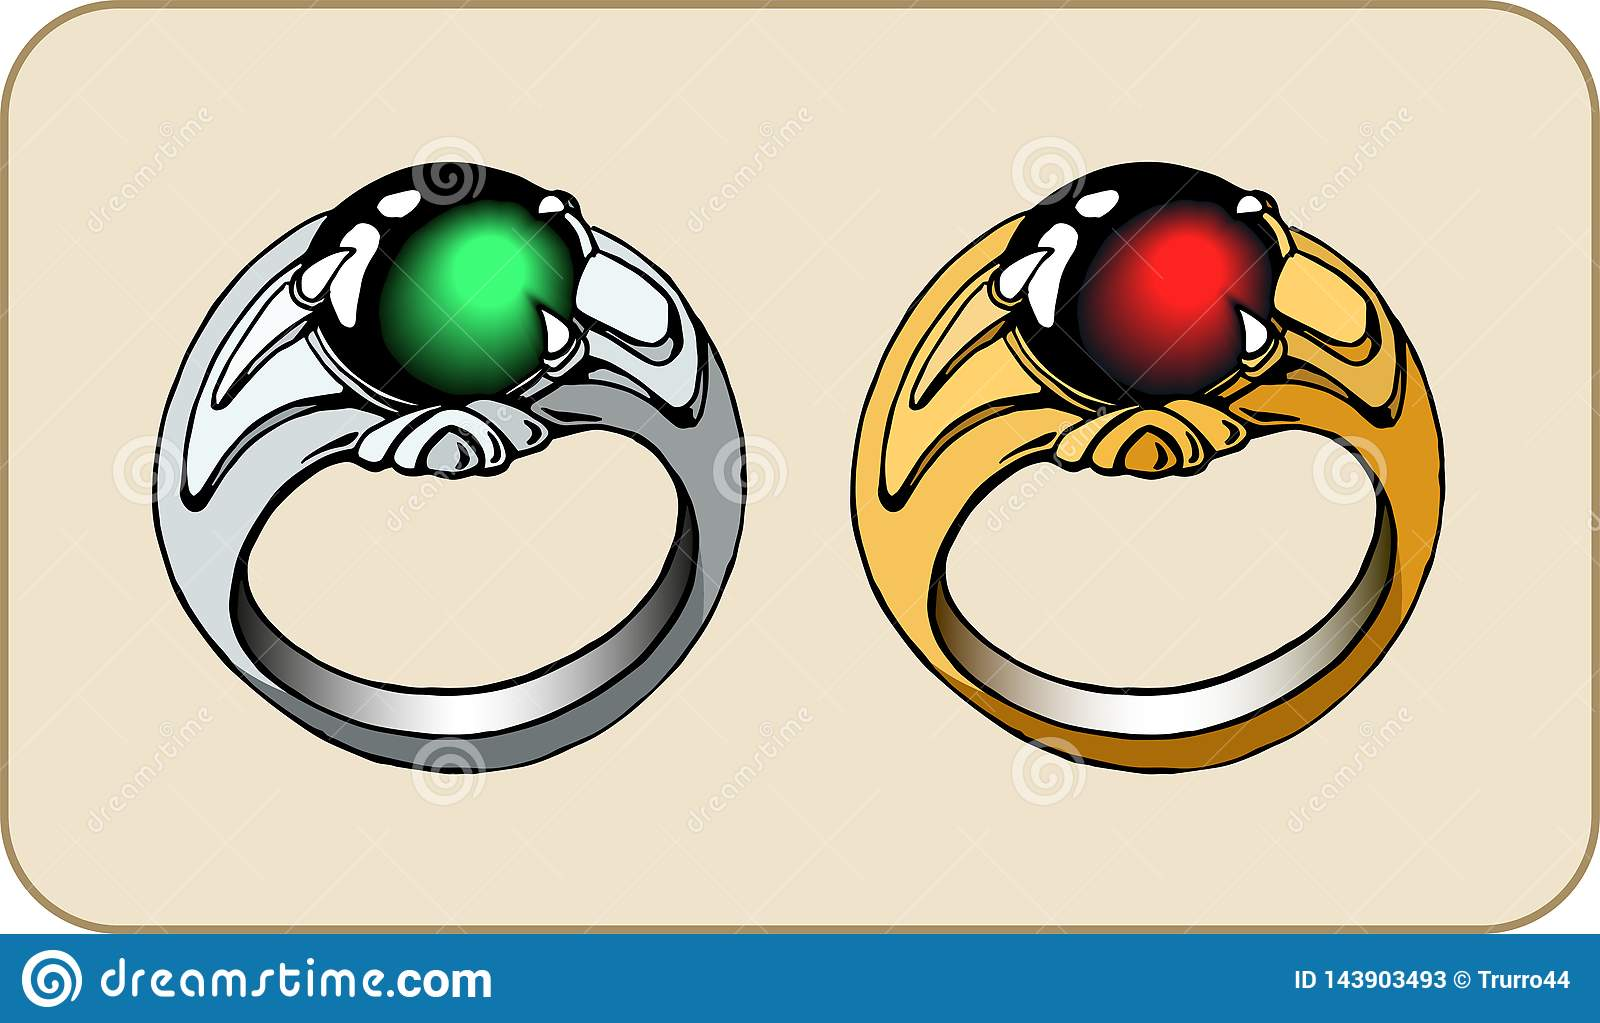 Fantasy ring with a stone. For game design